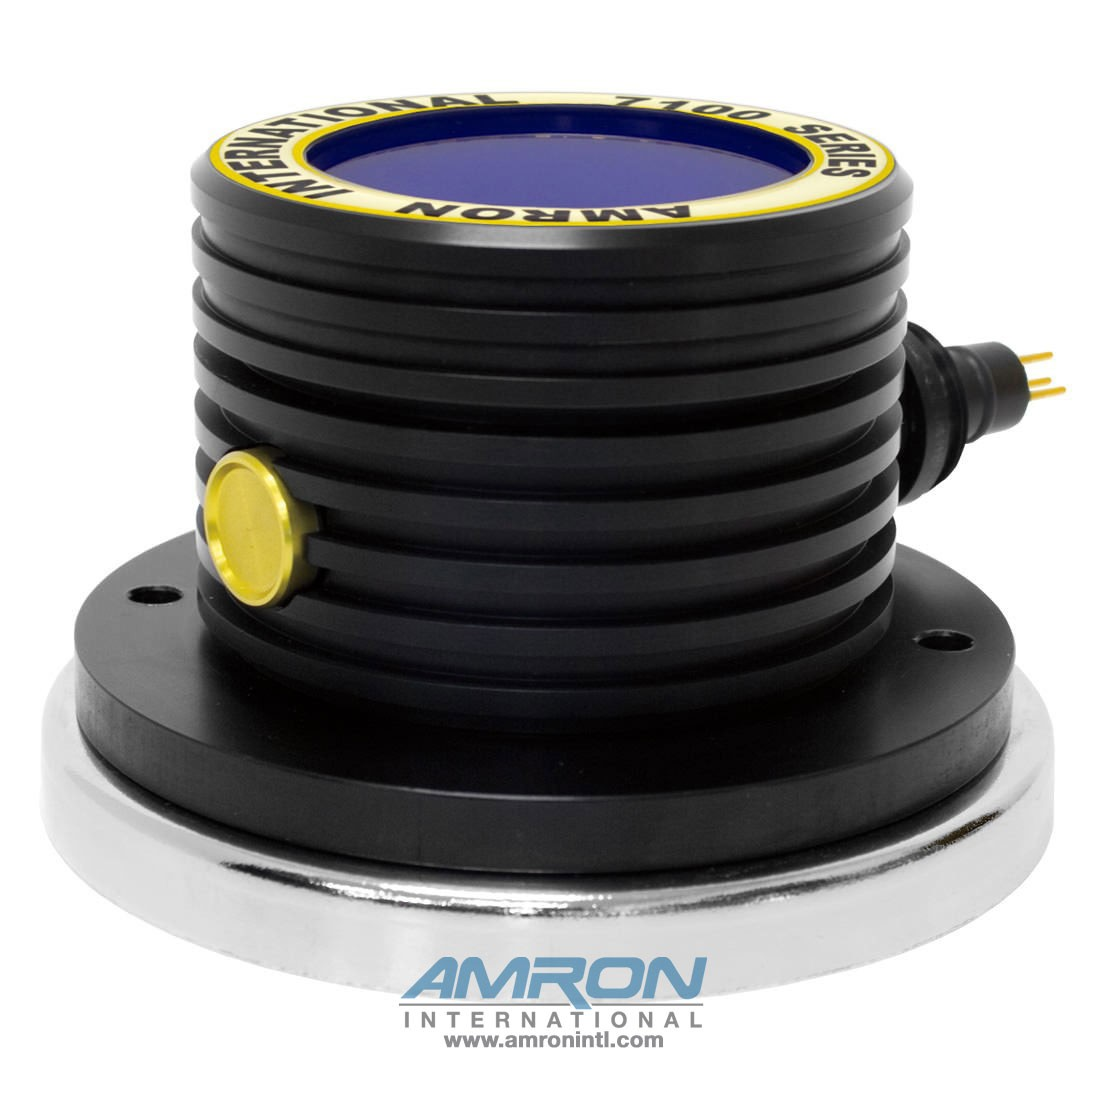 Amron International 7100 LED Chamber Light with Blue Filter and Optional Magnet Base